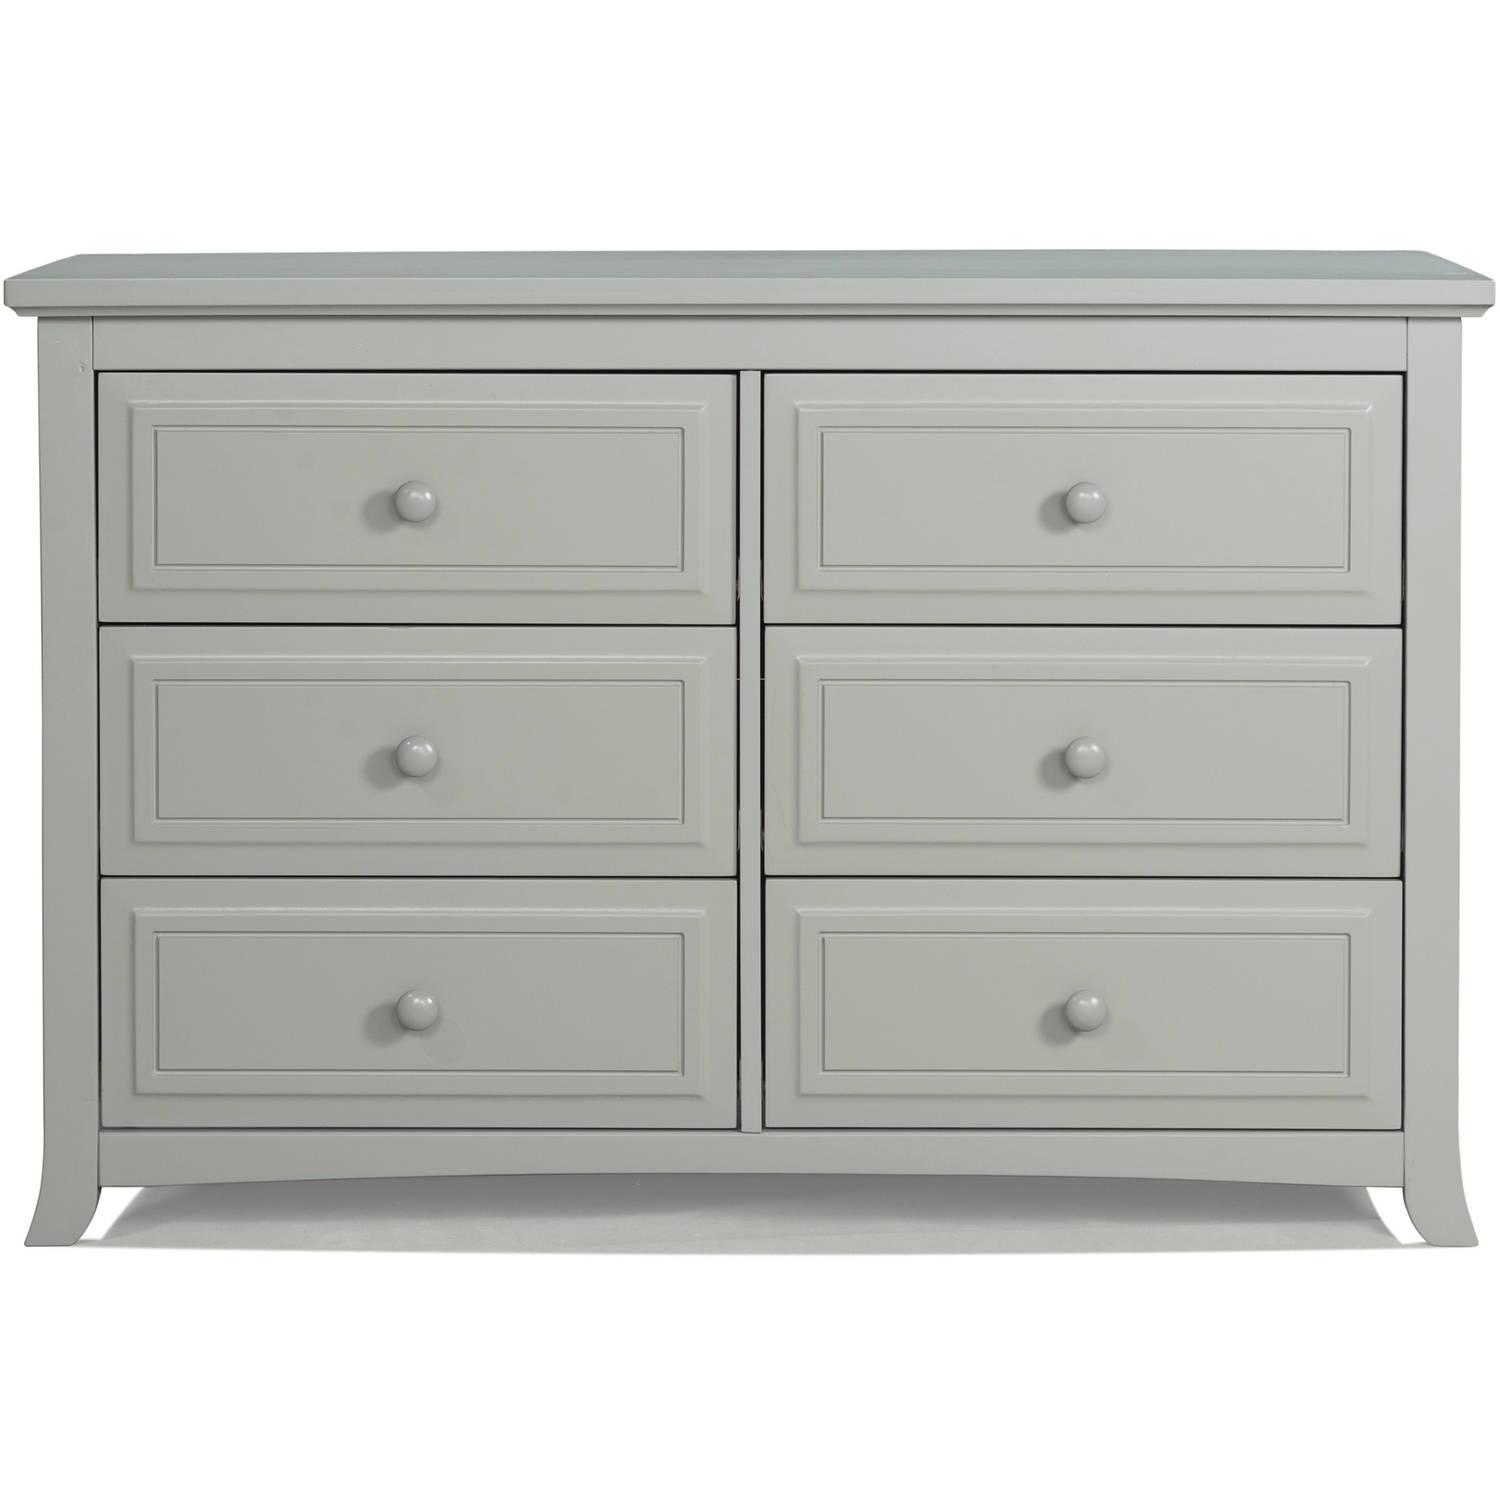 Graco Kendall 6 Drawer Double Dresser, Choose Your Finish ...